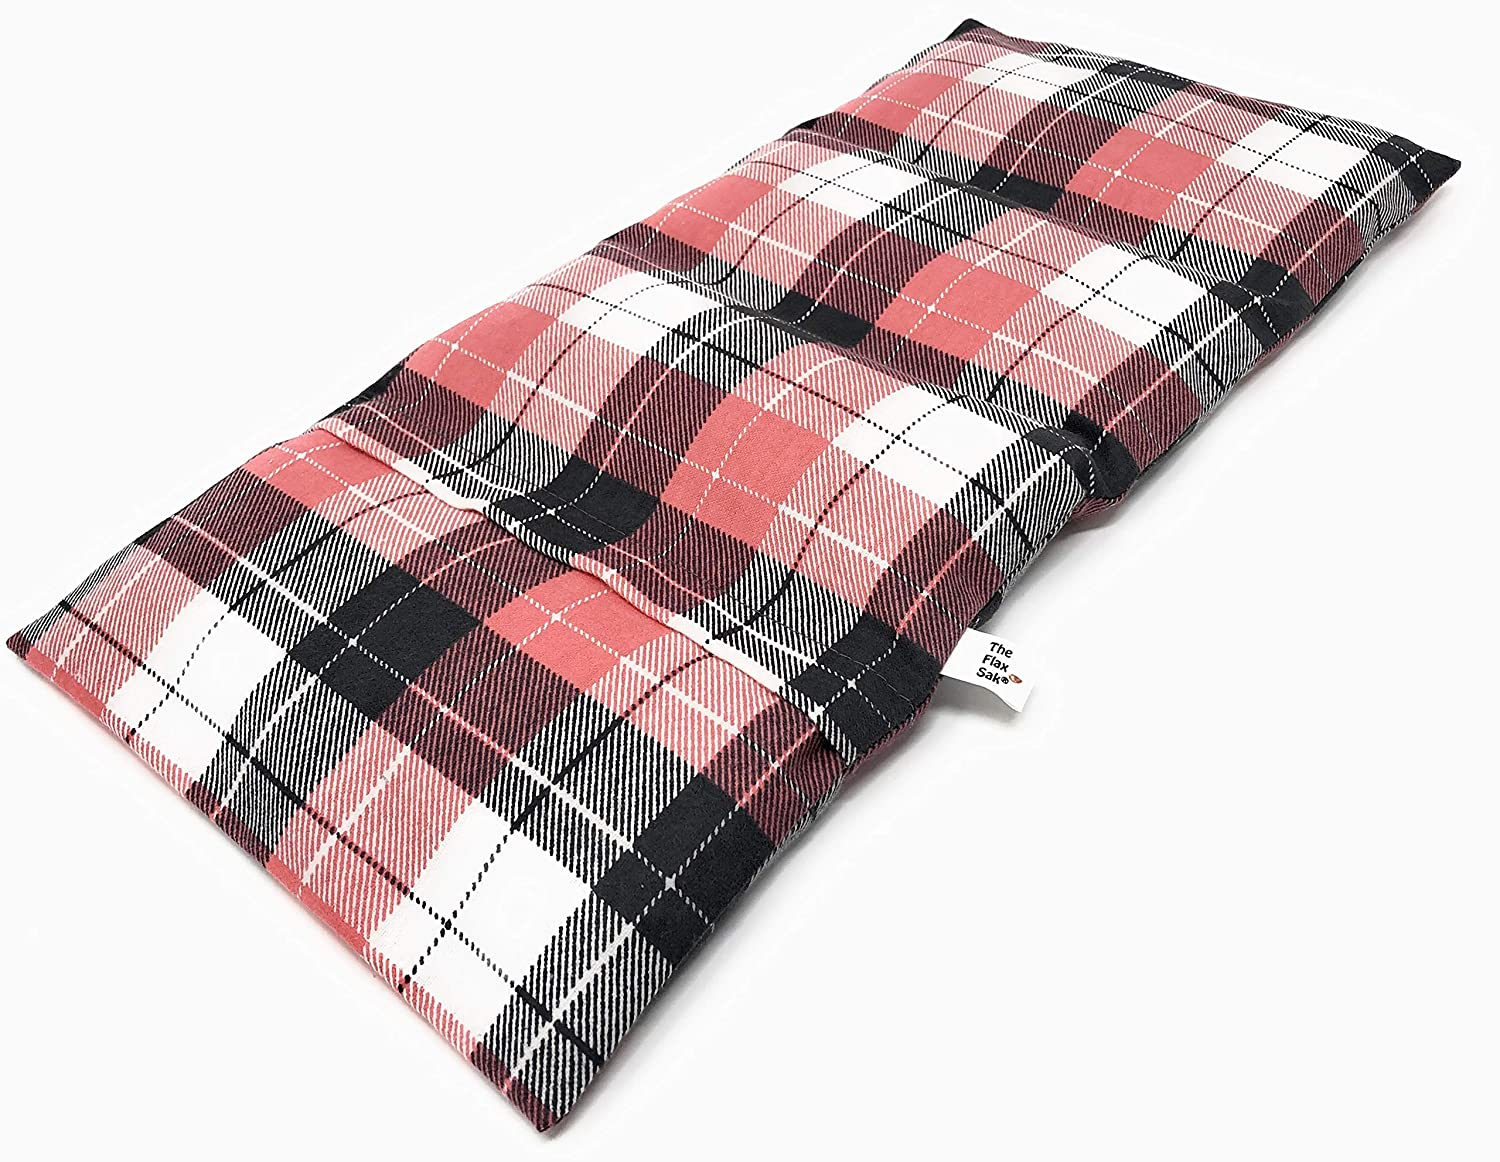 Unscented Large Microwave Heating Pad or Cold Pack with Washable Cover Coral and Grey Plaid by Flax Sak